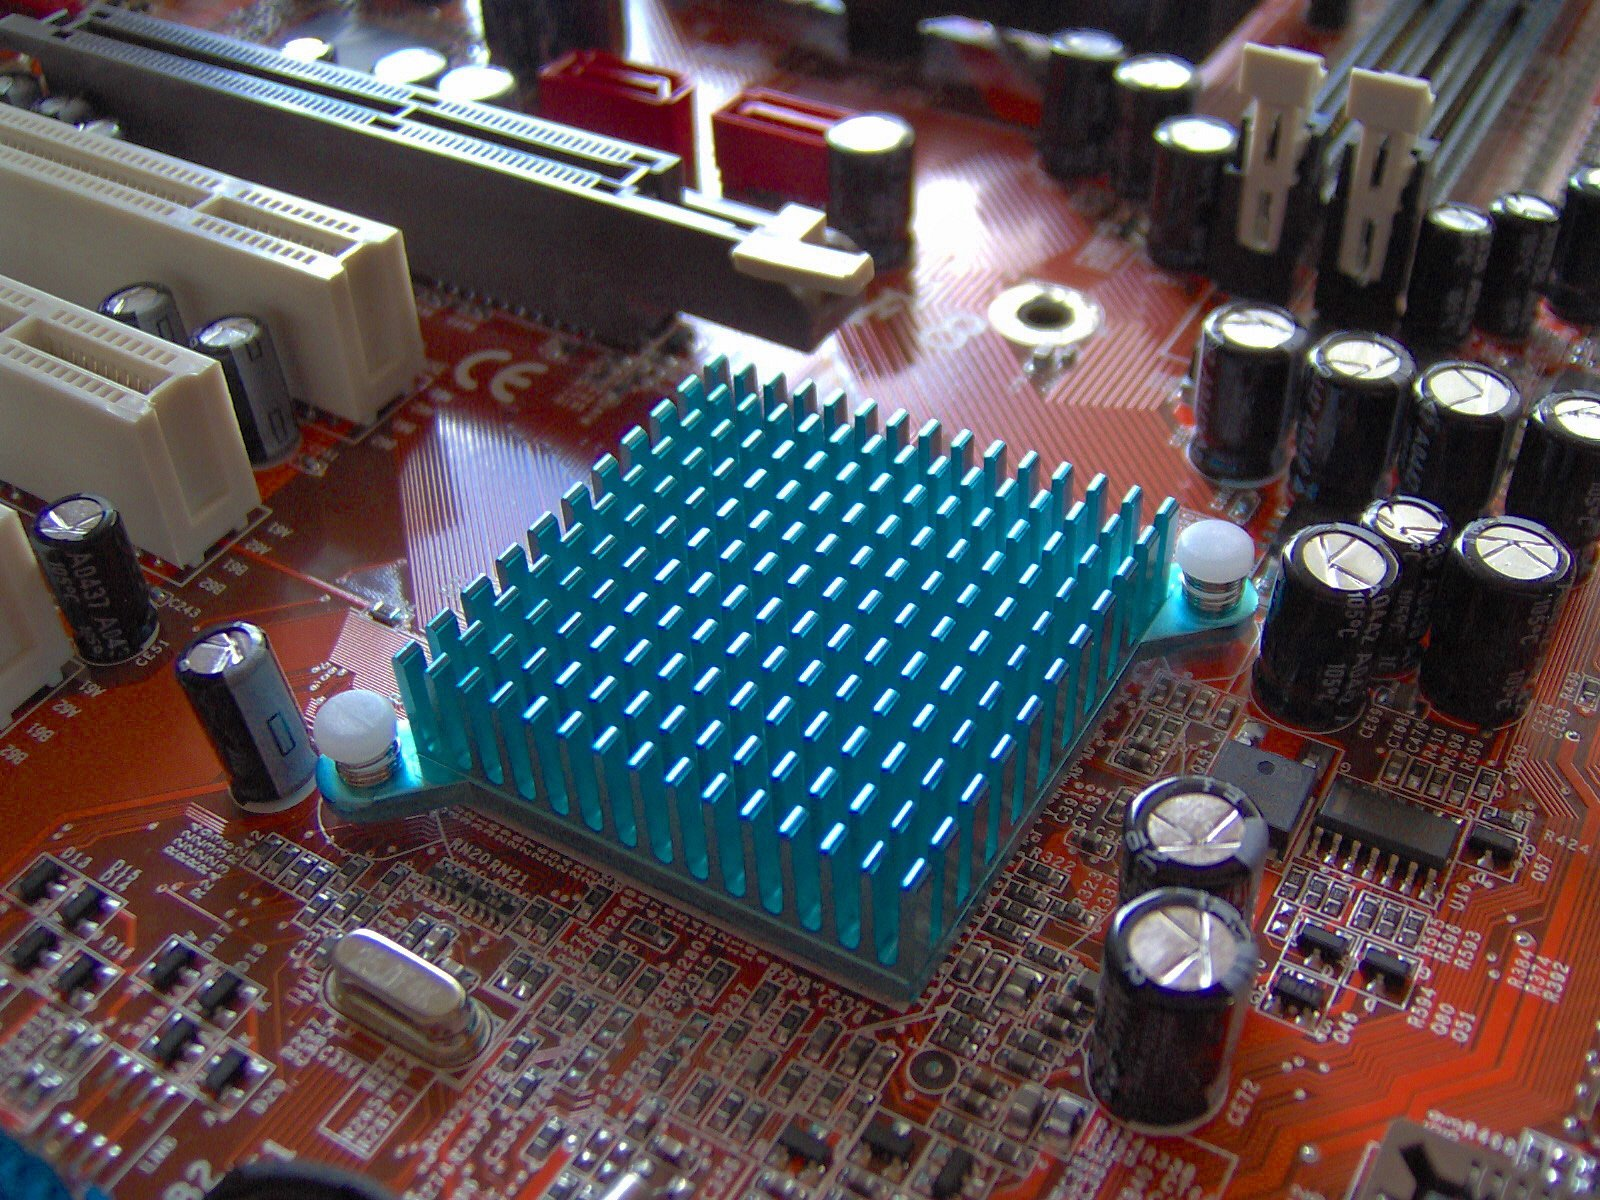 A copper heat sink to move heat away from a motherboard.